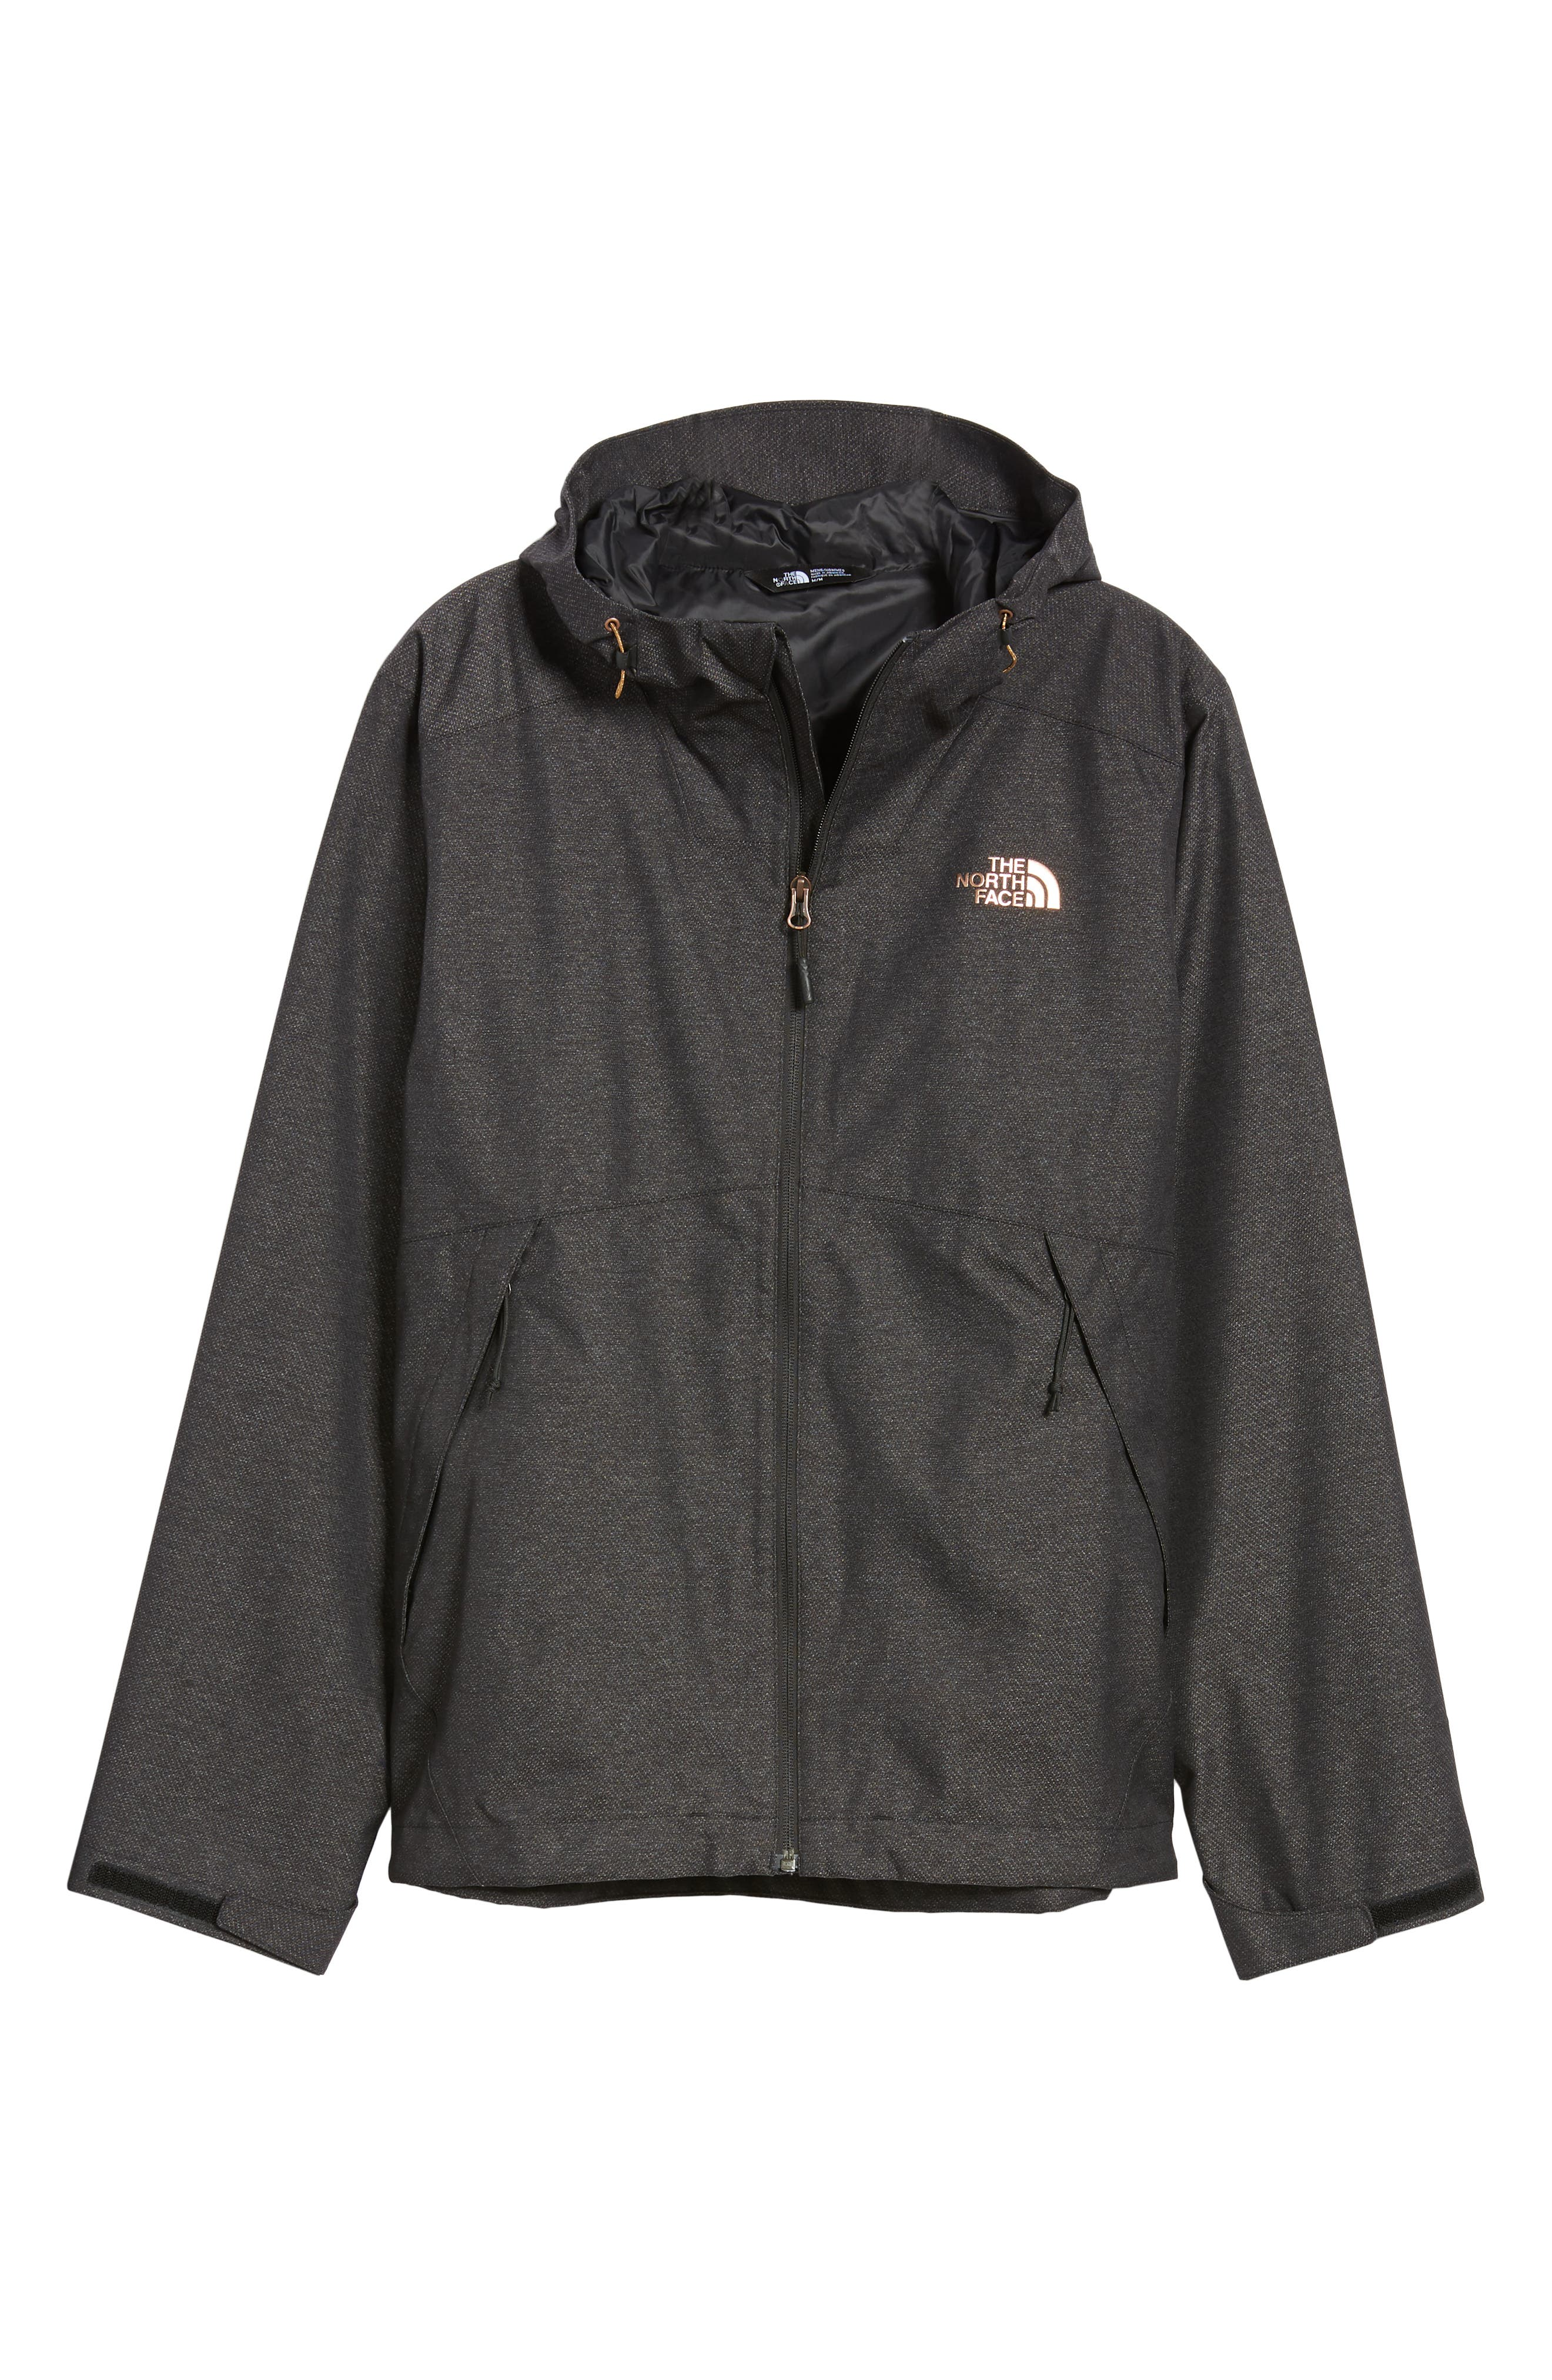 Millerton Hooded Waterproof Jacket,                             Alternate thumbnail 6, color,                             TNF BLACK / METALLIC COPPER